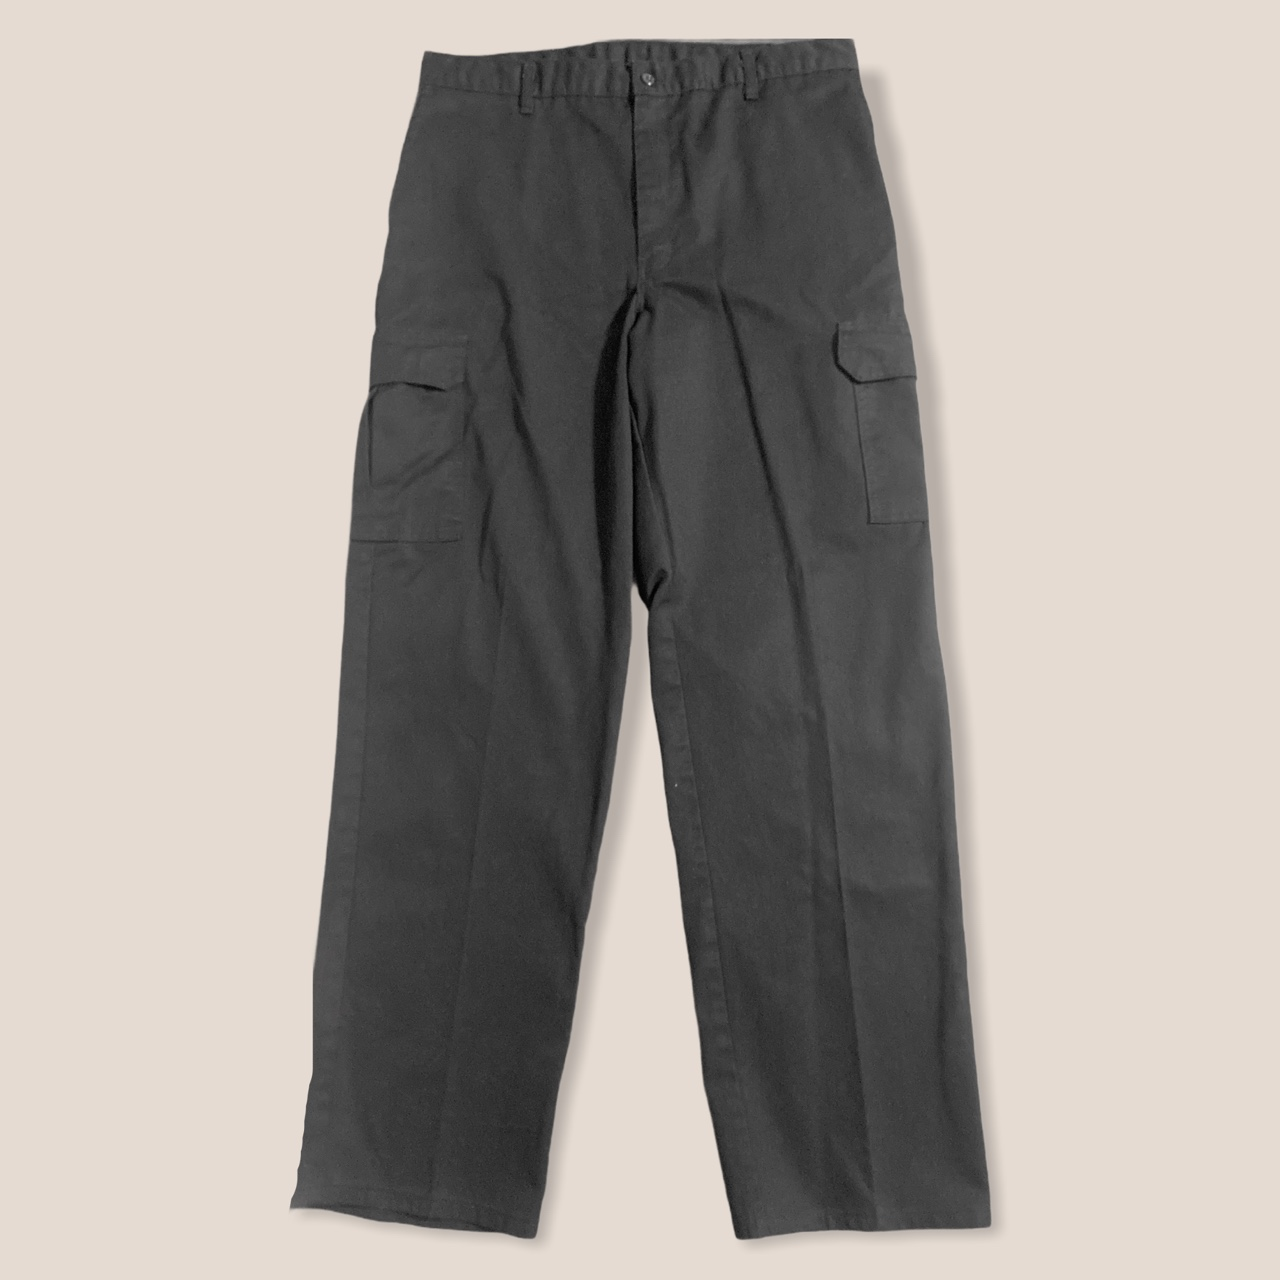 Product Image 1 - Black Dickies Cargo Pants   Size